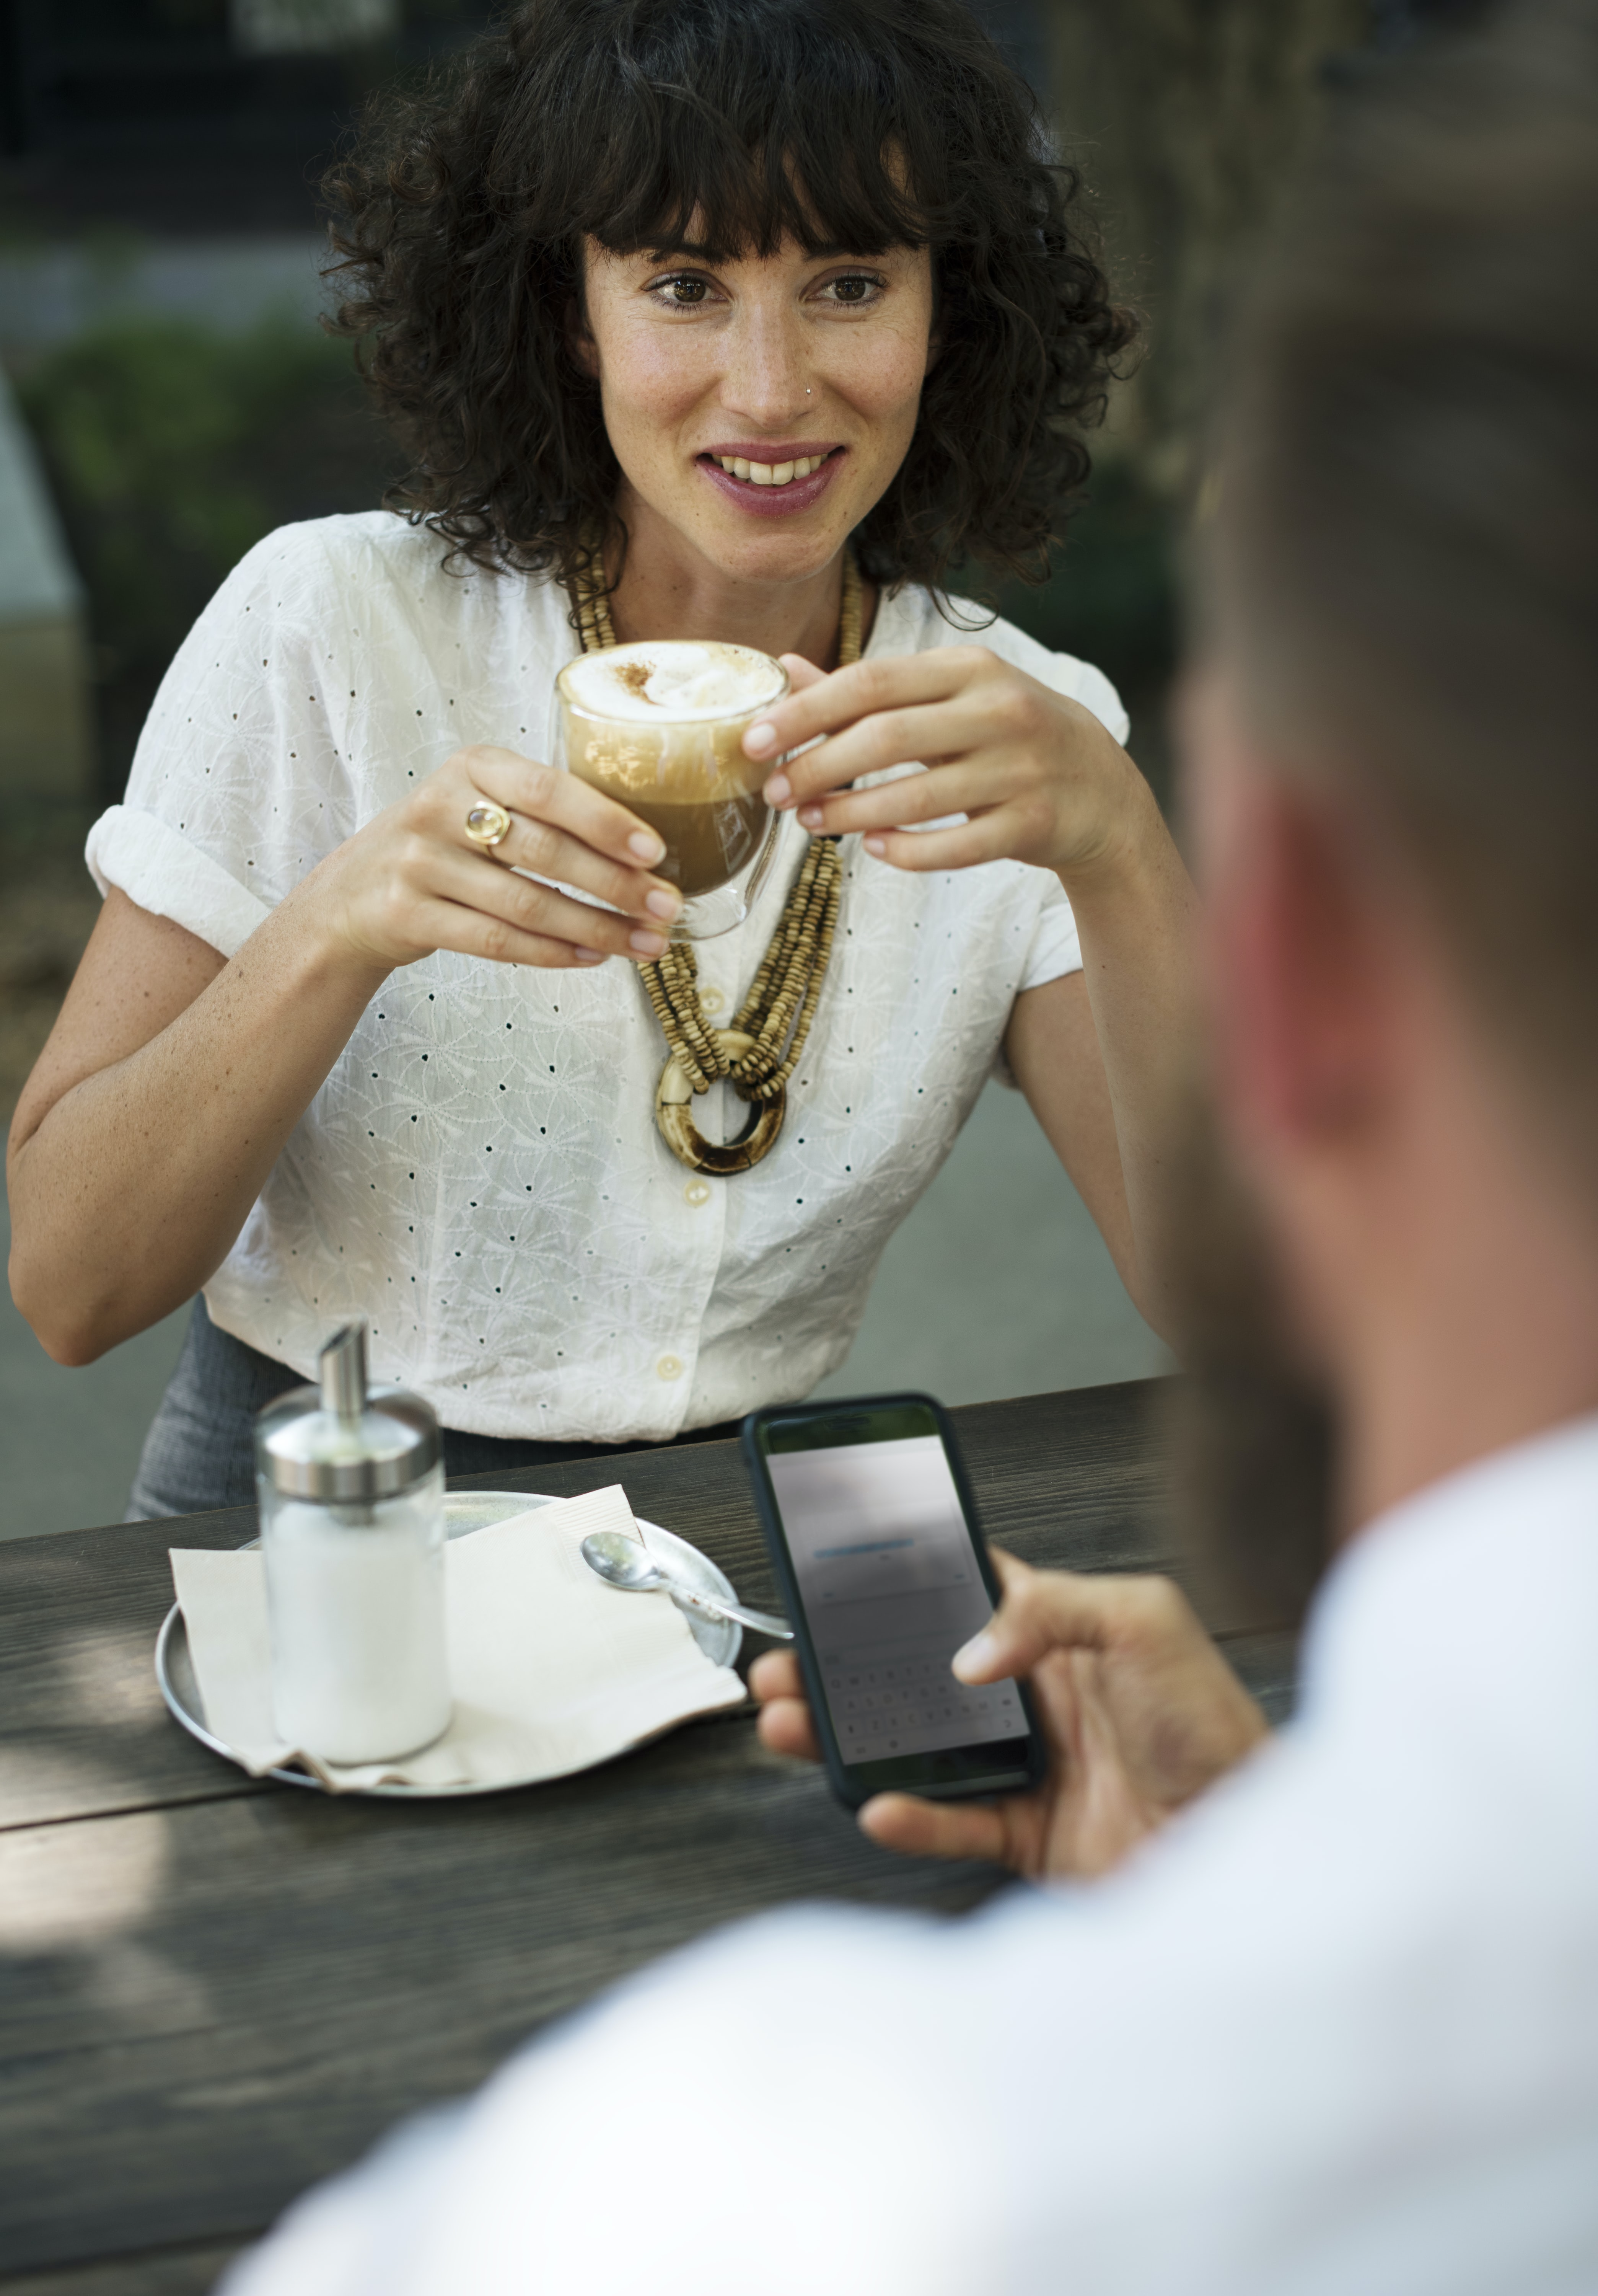 woman holding clear glass mug with beverage